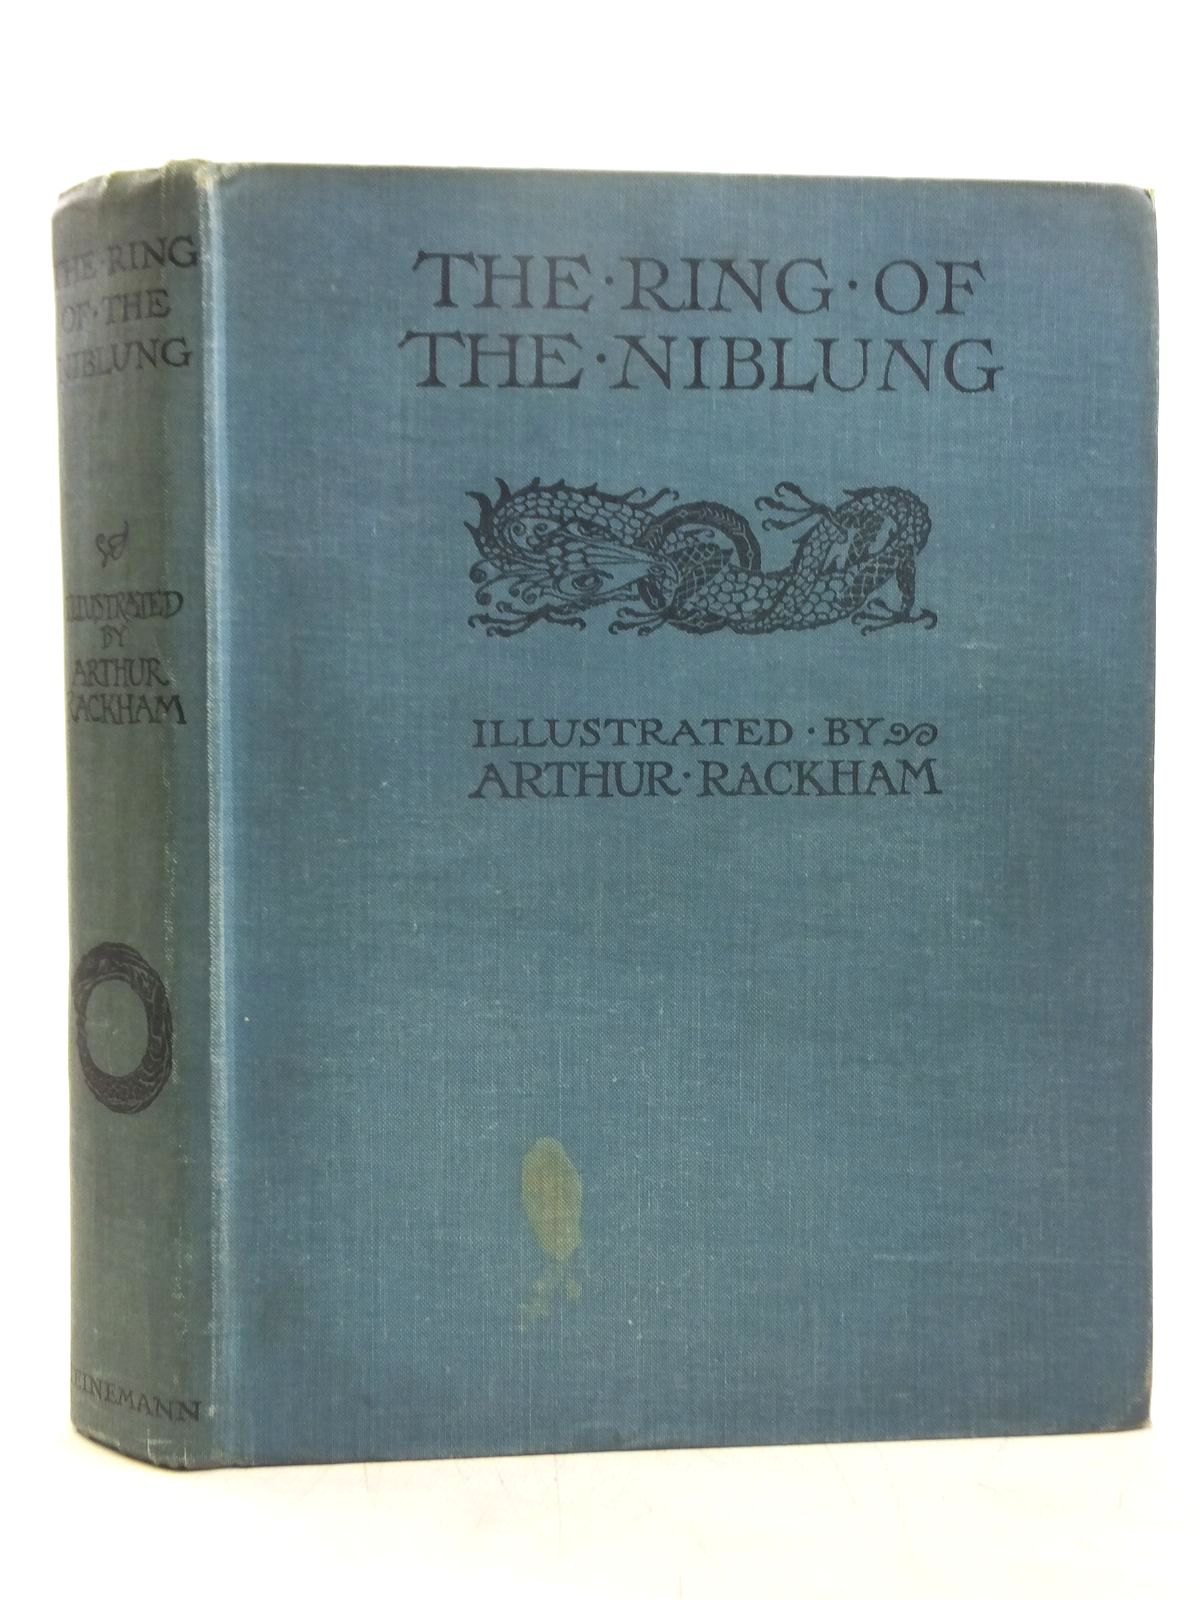 Photo of THE RING OF THE NIBLUNG written by Wagner, Richard illustrated by Rackham, Arthur published by William Heinemann Ltd. (STOCK CODE: 2119205)  for sale by Stella & Rose's Books